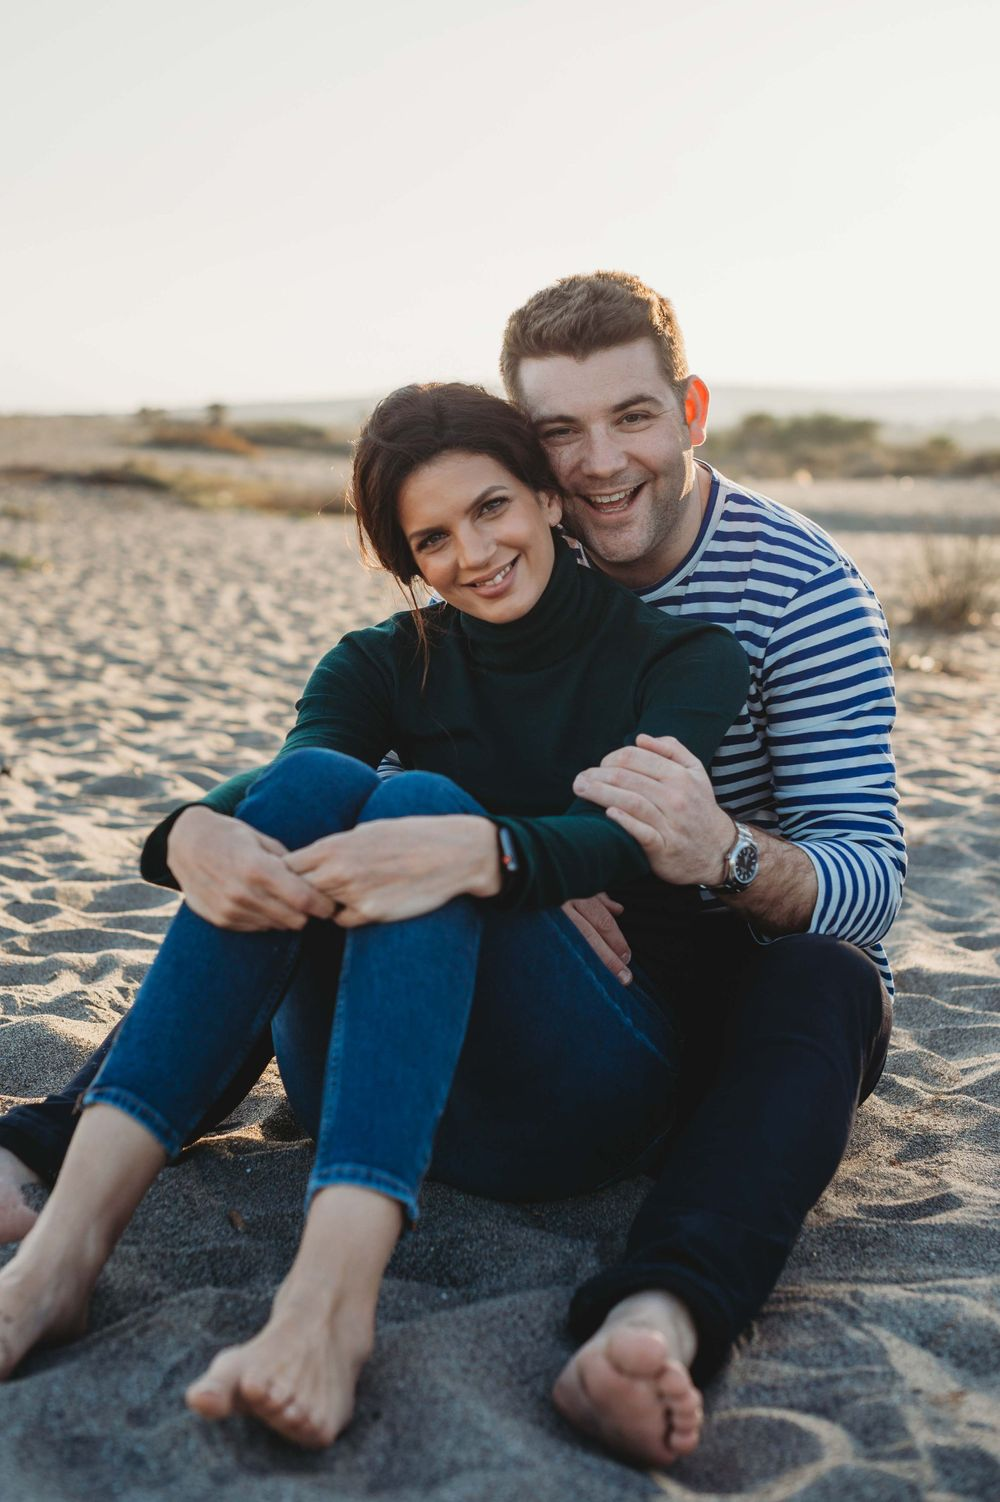 Portrait of a couple on a beach